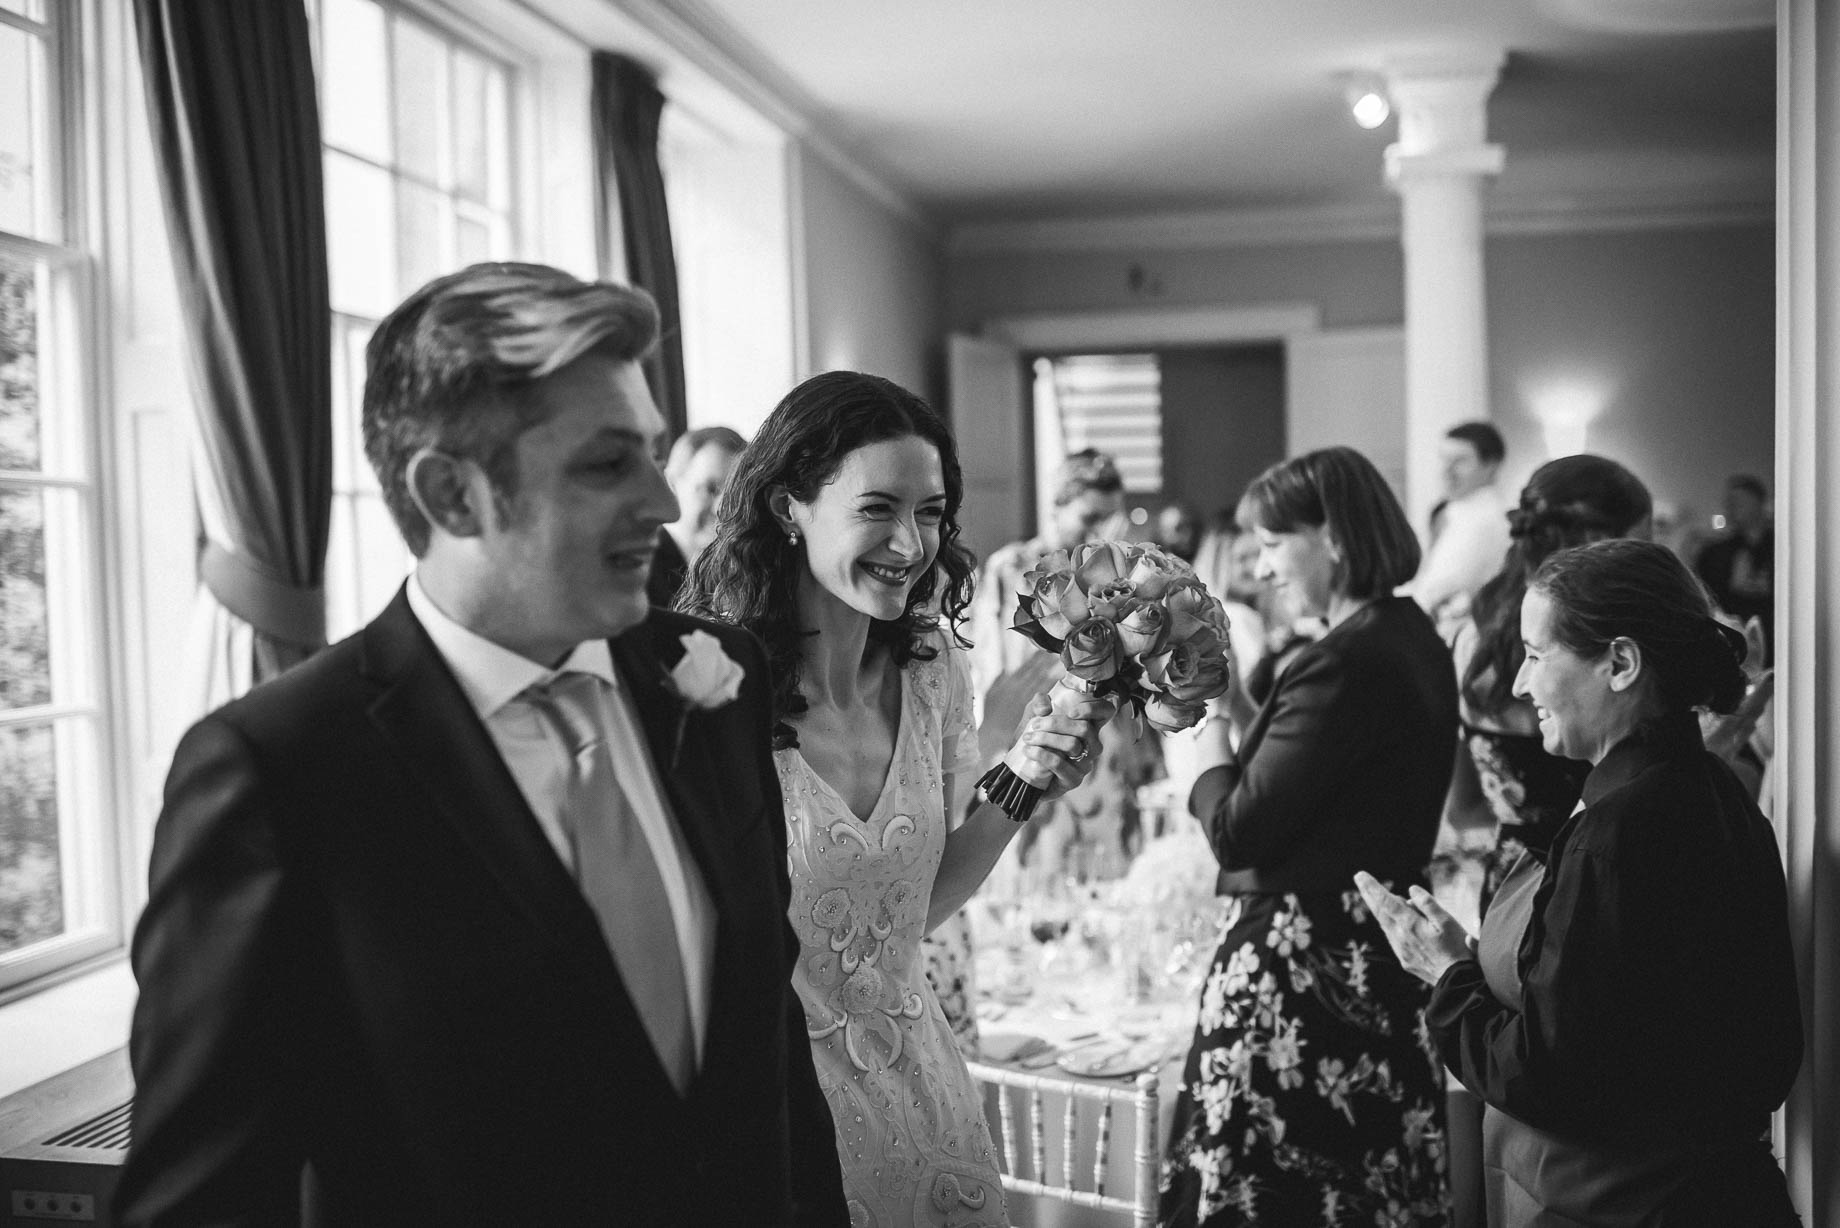 The RSA wedding photography - Caroline + Ryan